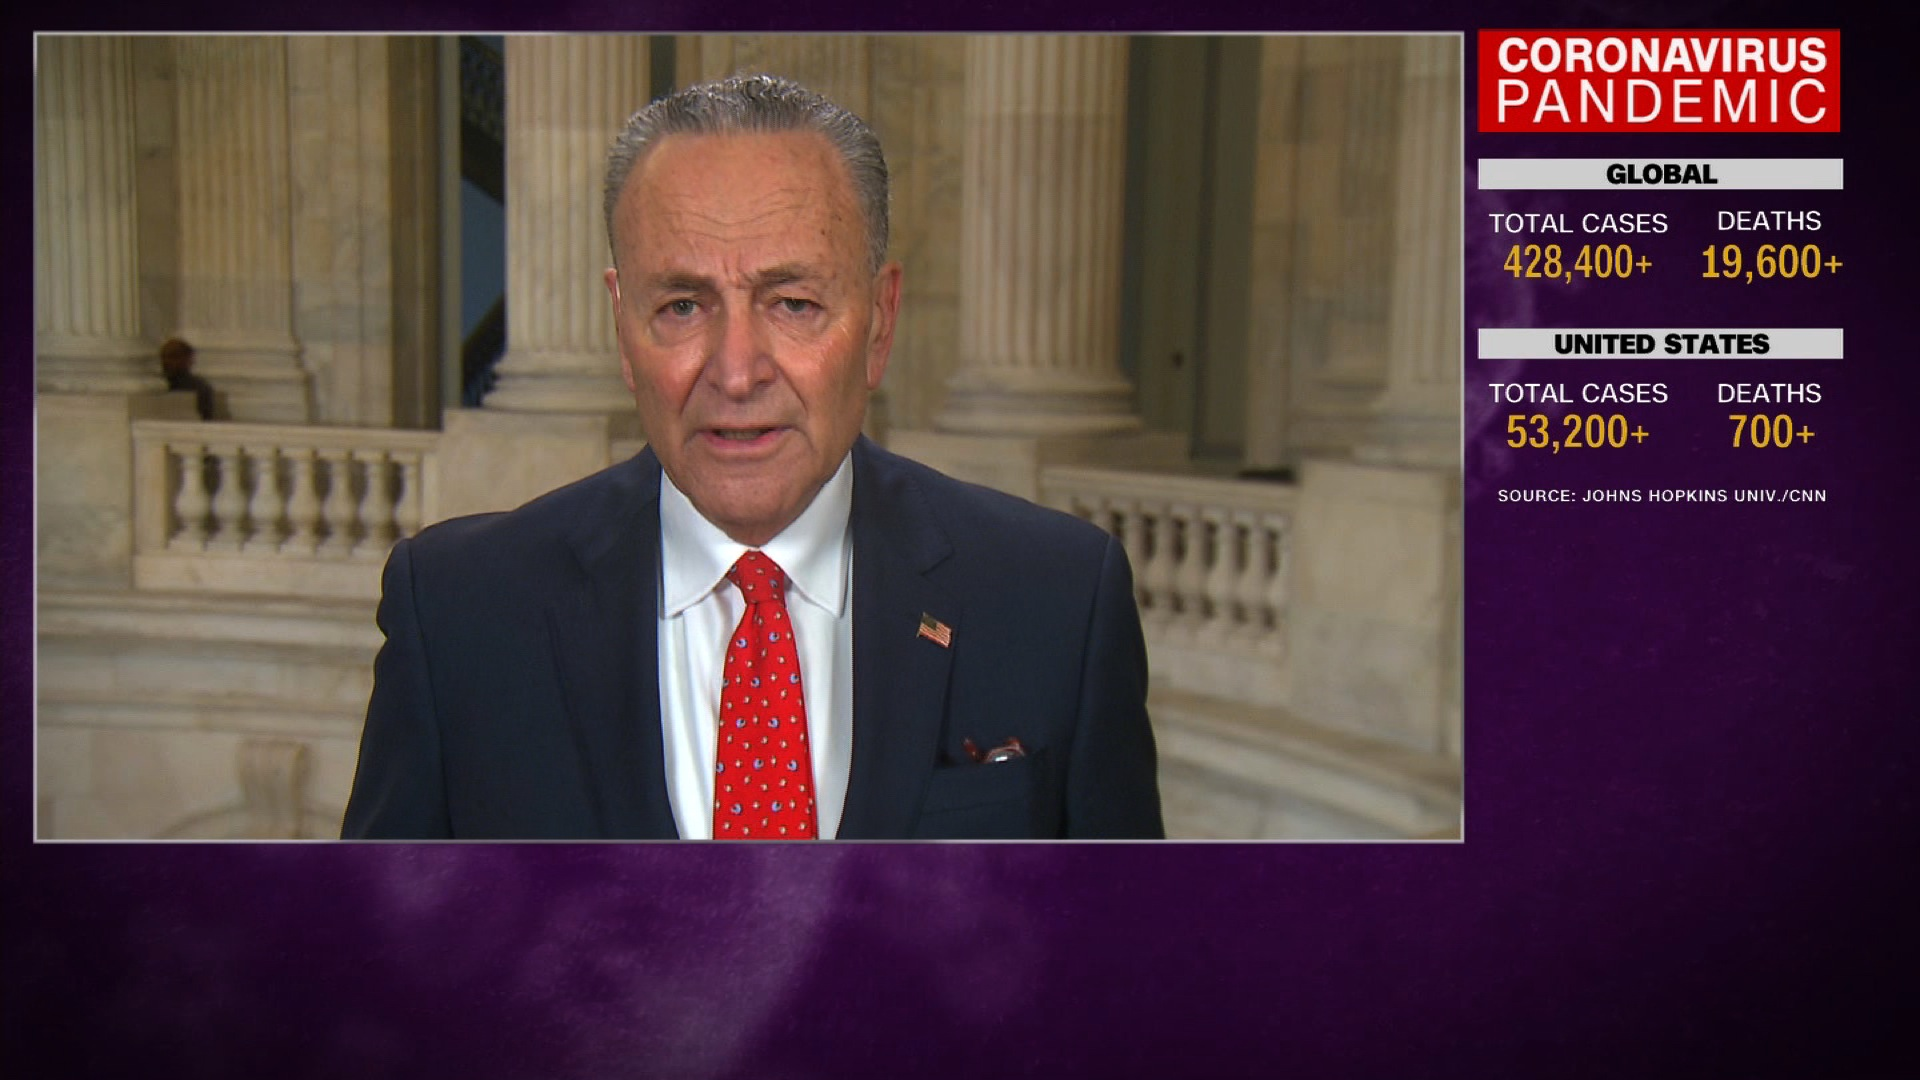 Trump letter attacking Schumer is sent as President says 'this is not the time for politics'